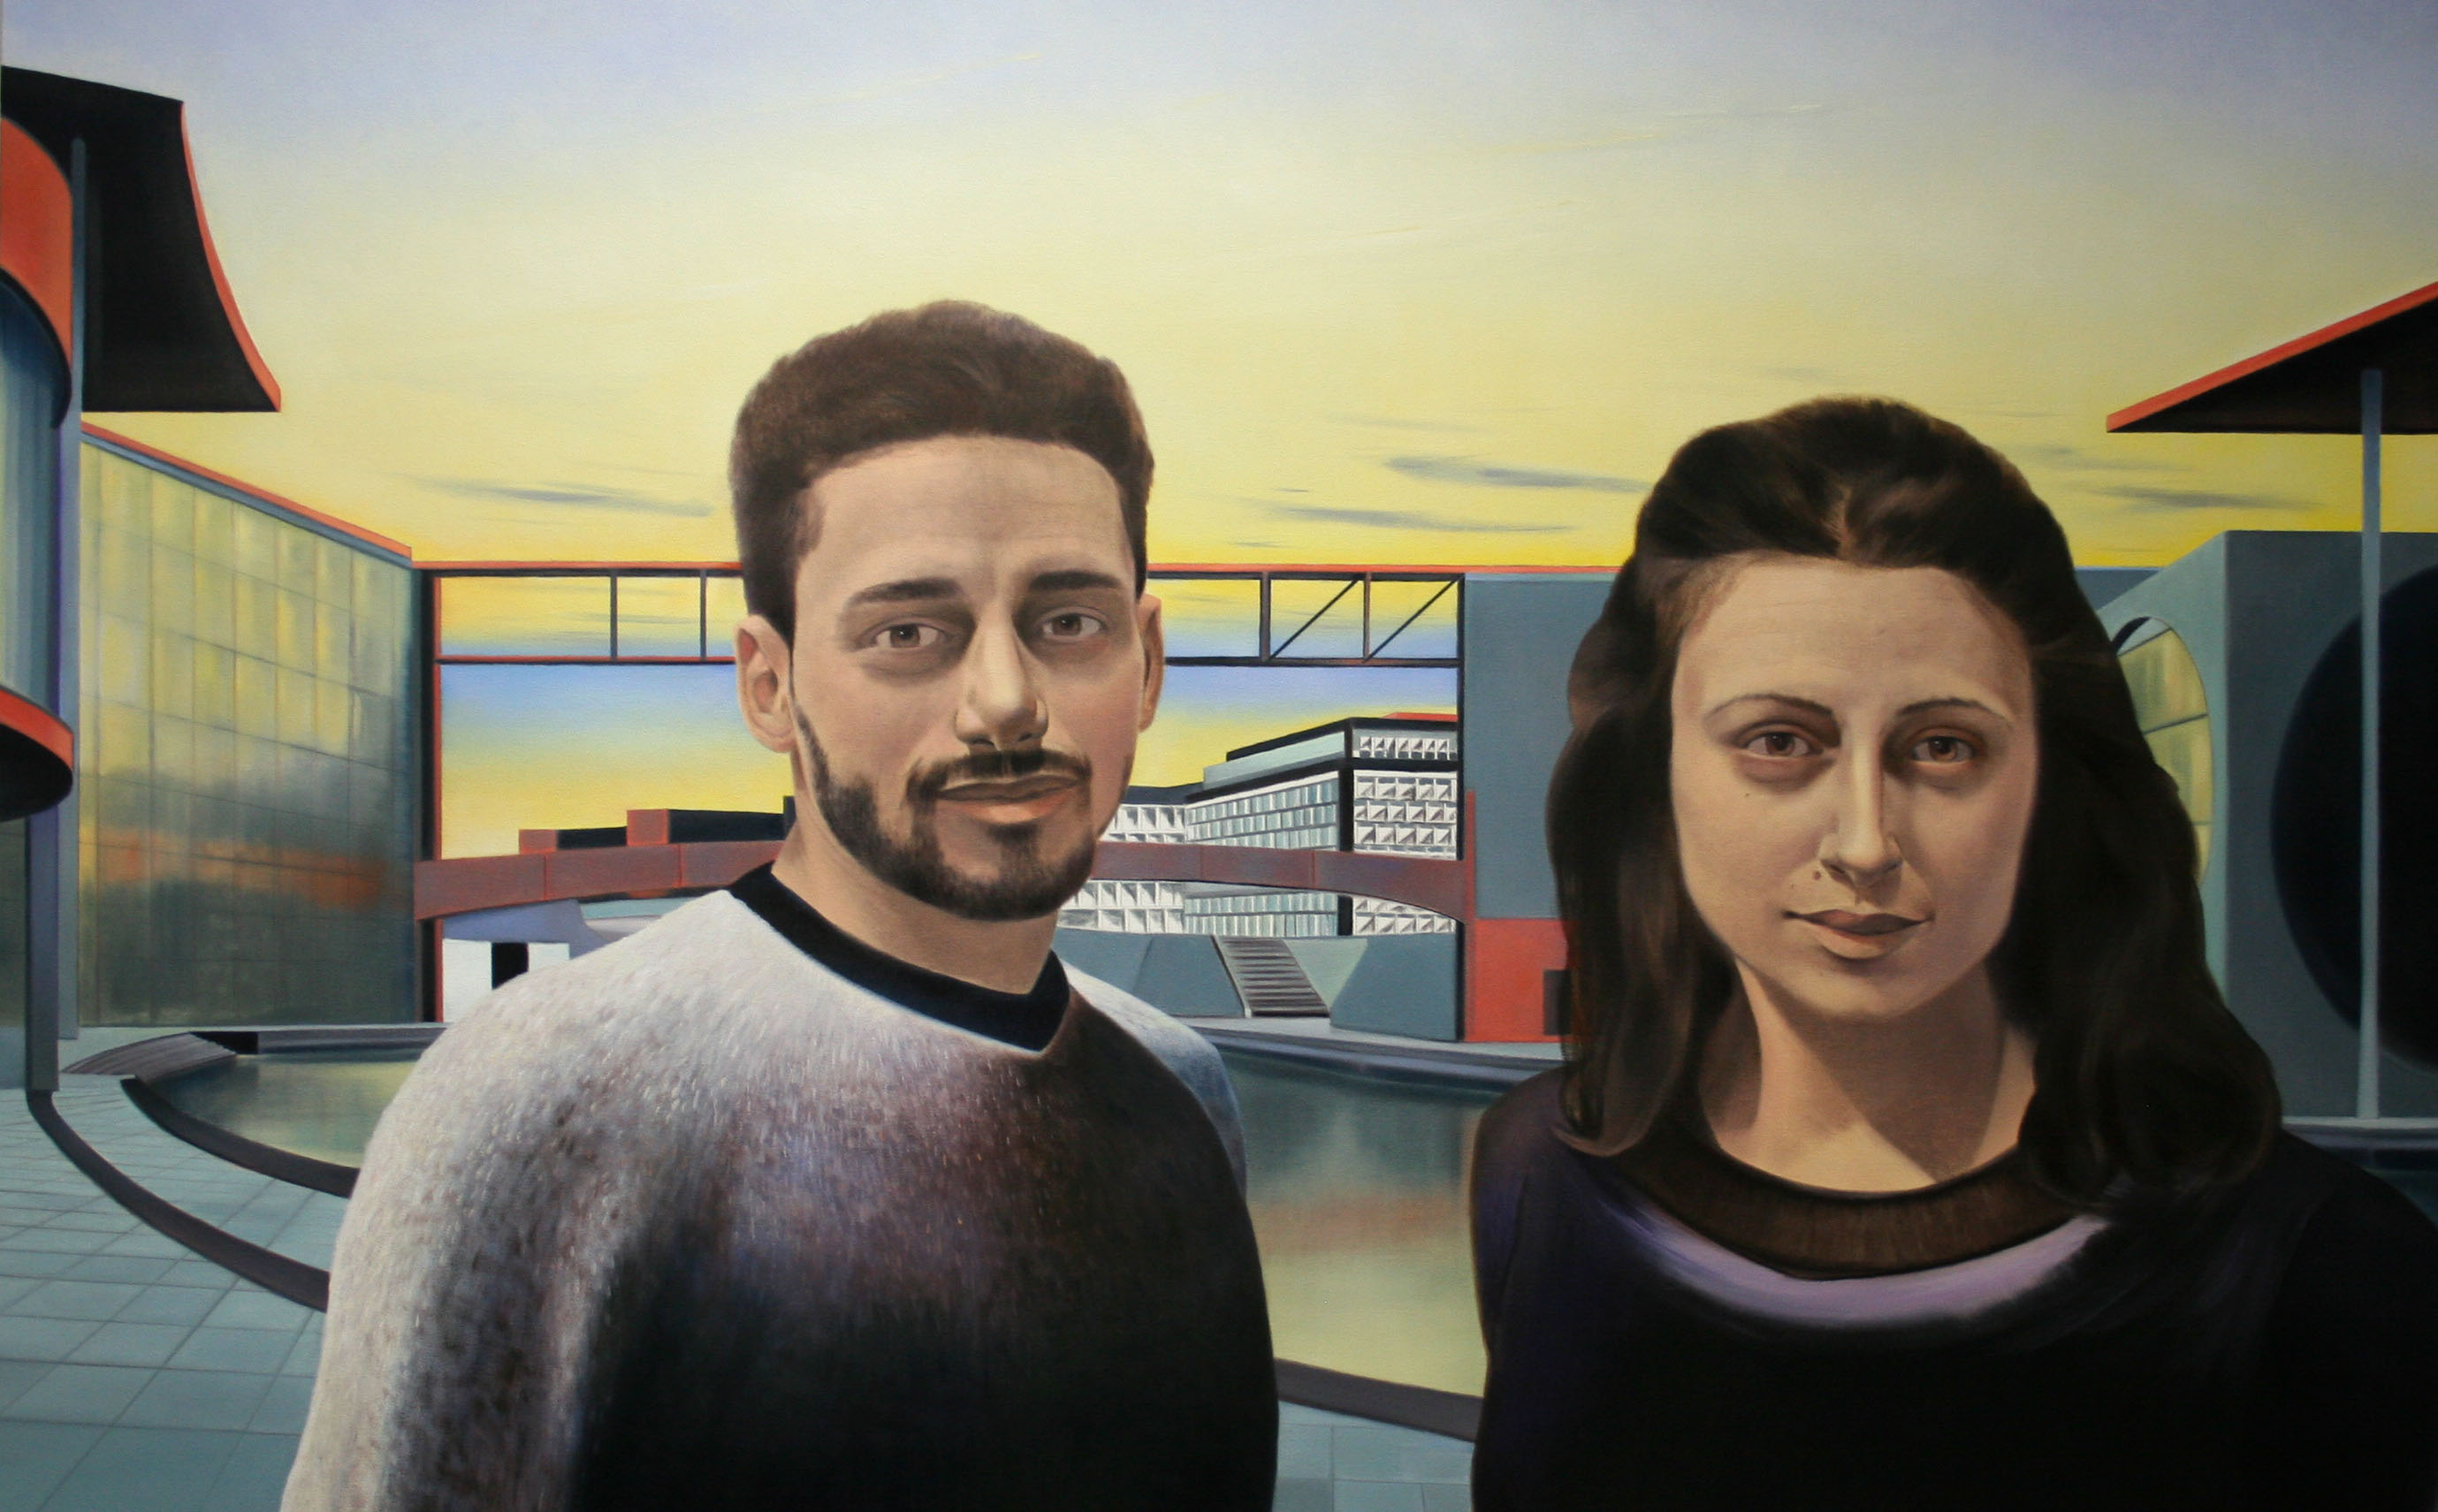 Hussam-and-Zoya-Government-District-Berlin-48-x-60-in-oil-and-colored-pencil-on-canvas-2018-2